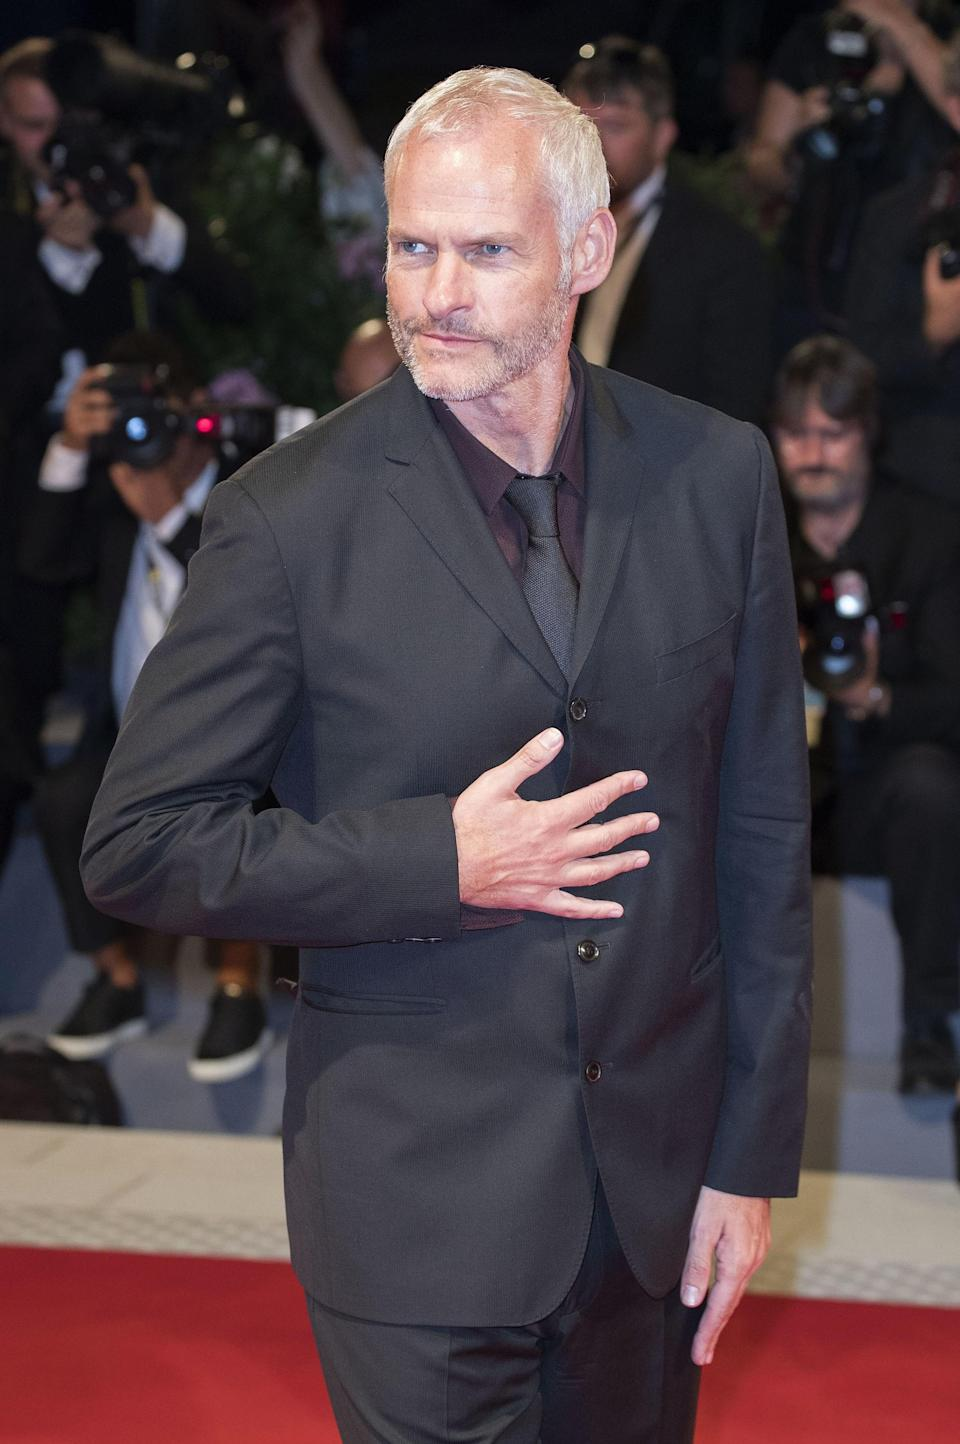 Martin McDonagh attends the premiere of <em>Three Billboards Outside Ebbing, Missouri</em> premiere at the 74th Venice International Film Festival in September. (Photo: DPA/Courtesy Everett Collection)